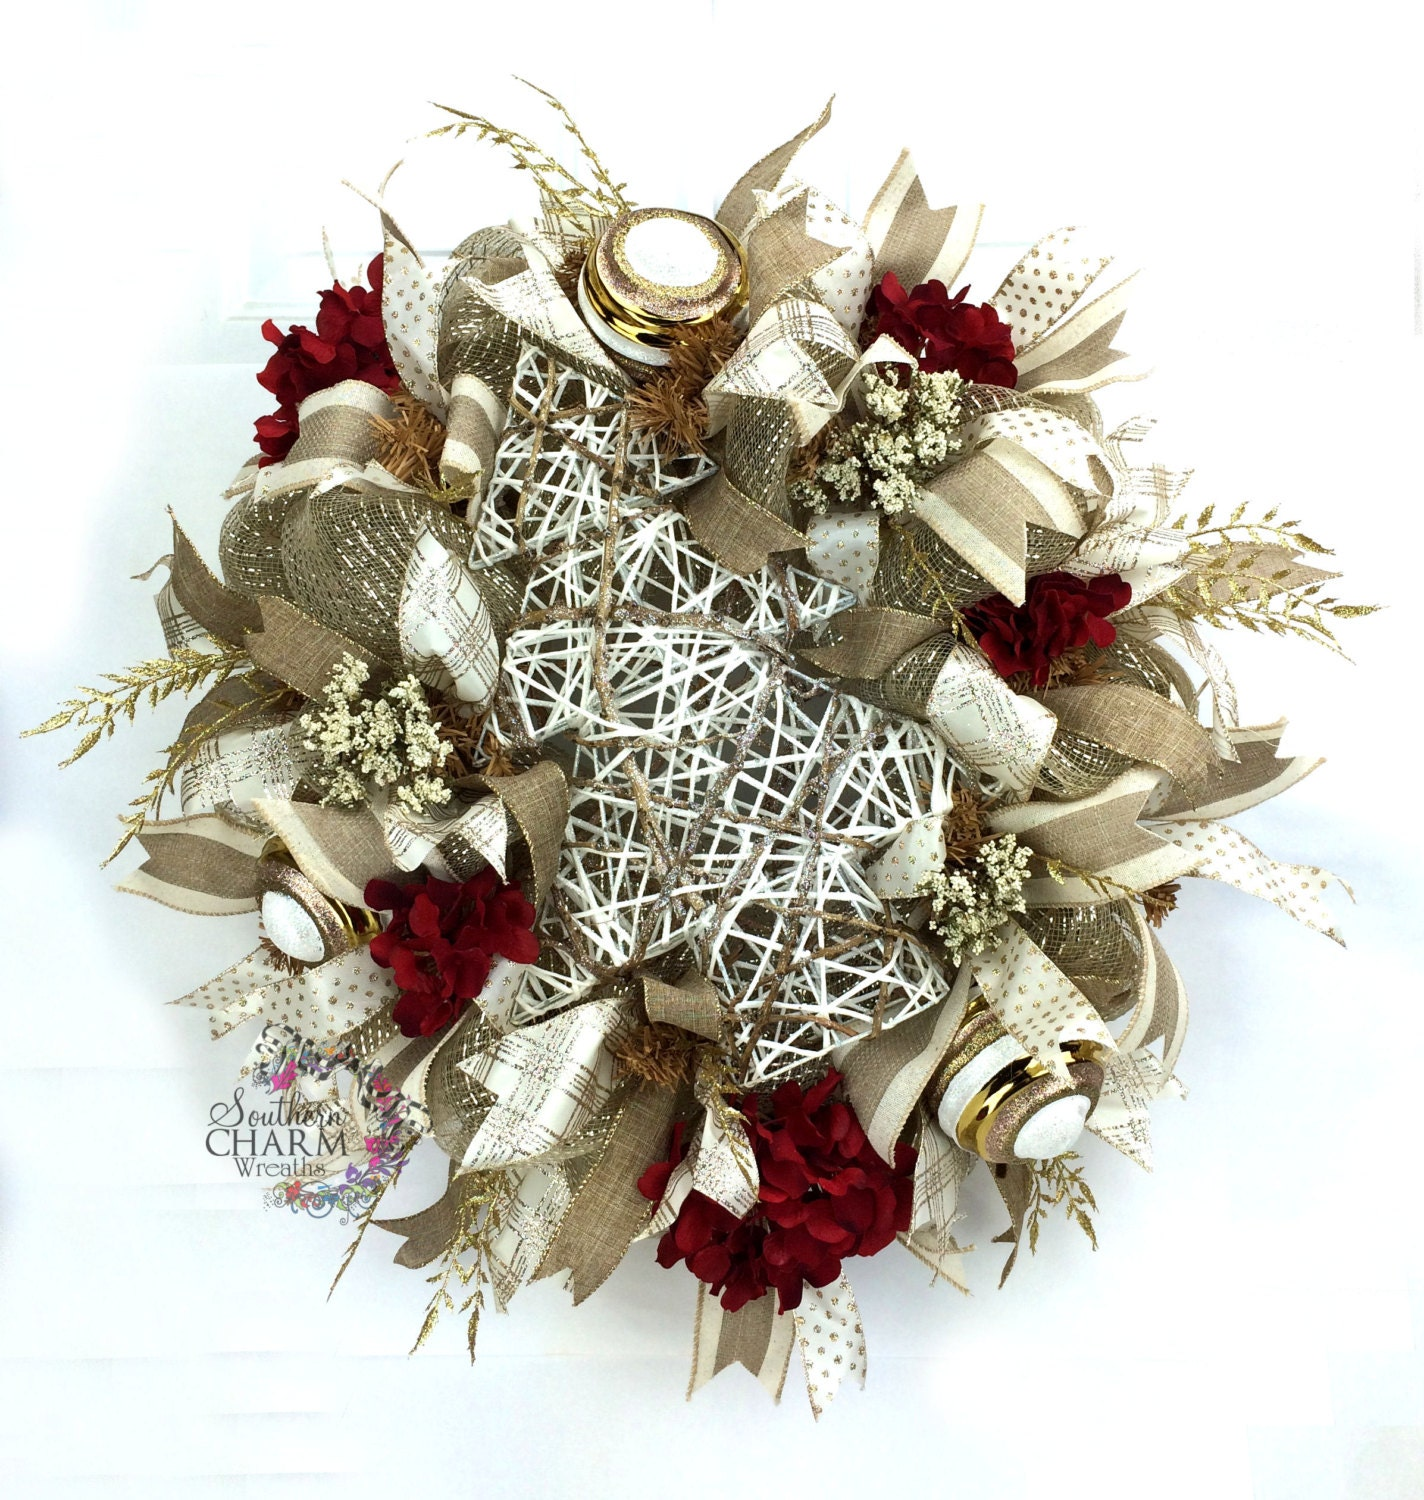 Deco Mesh Christmas Wreath In Burlap Cream & Gold With Red